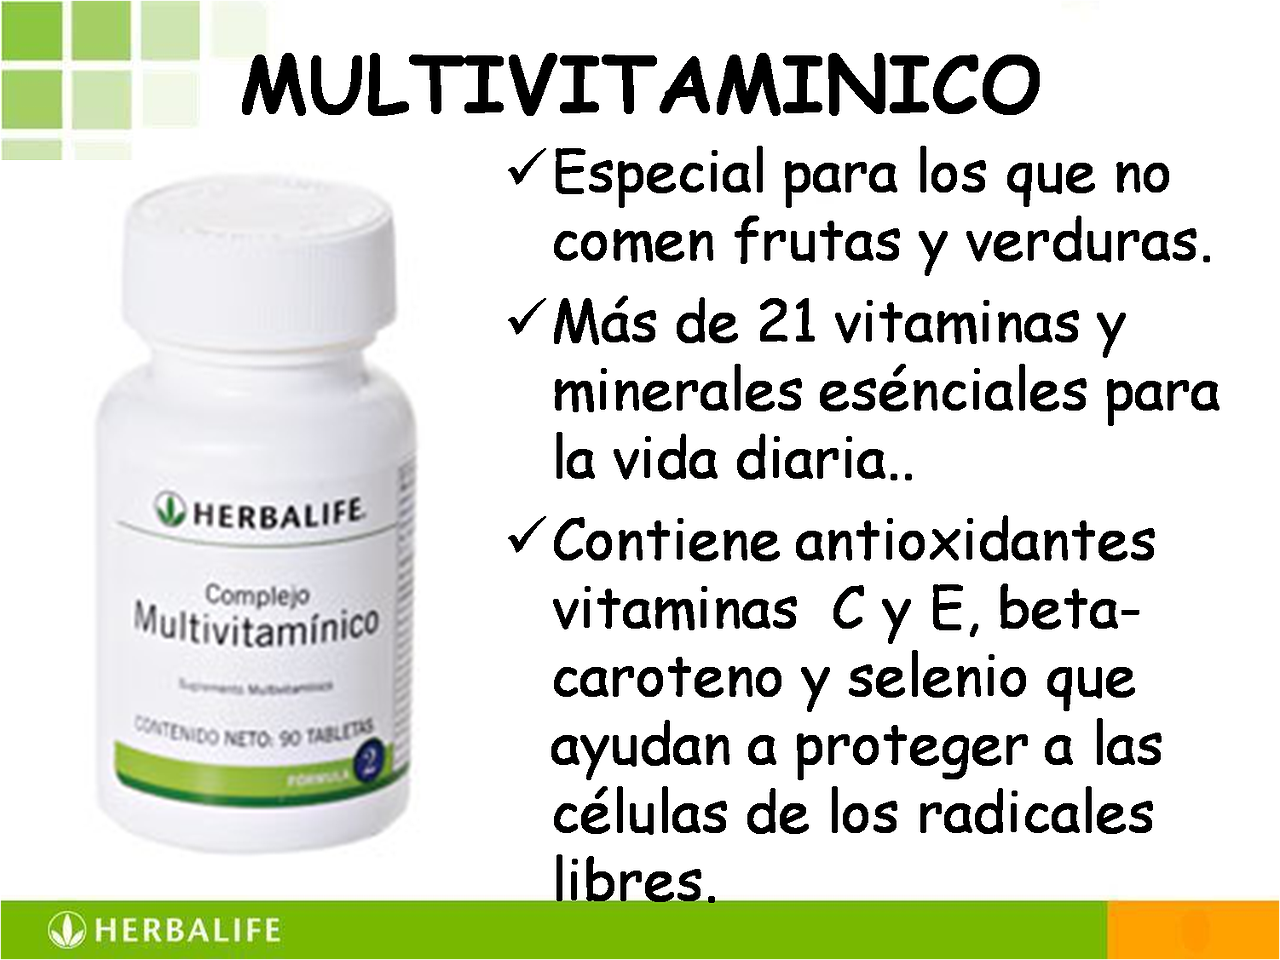 Wix.com nutraceconherbalife created by evigoyac based on